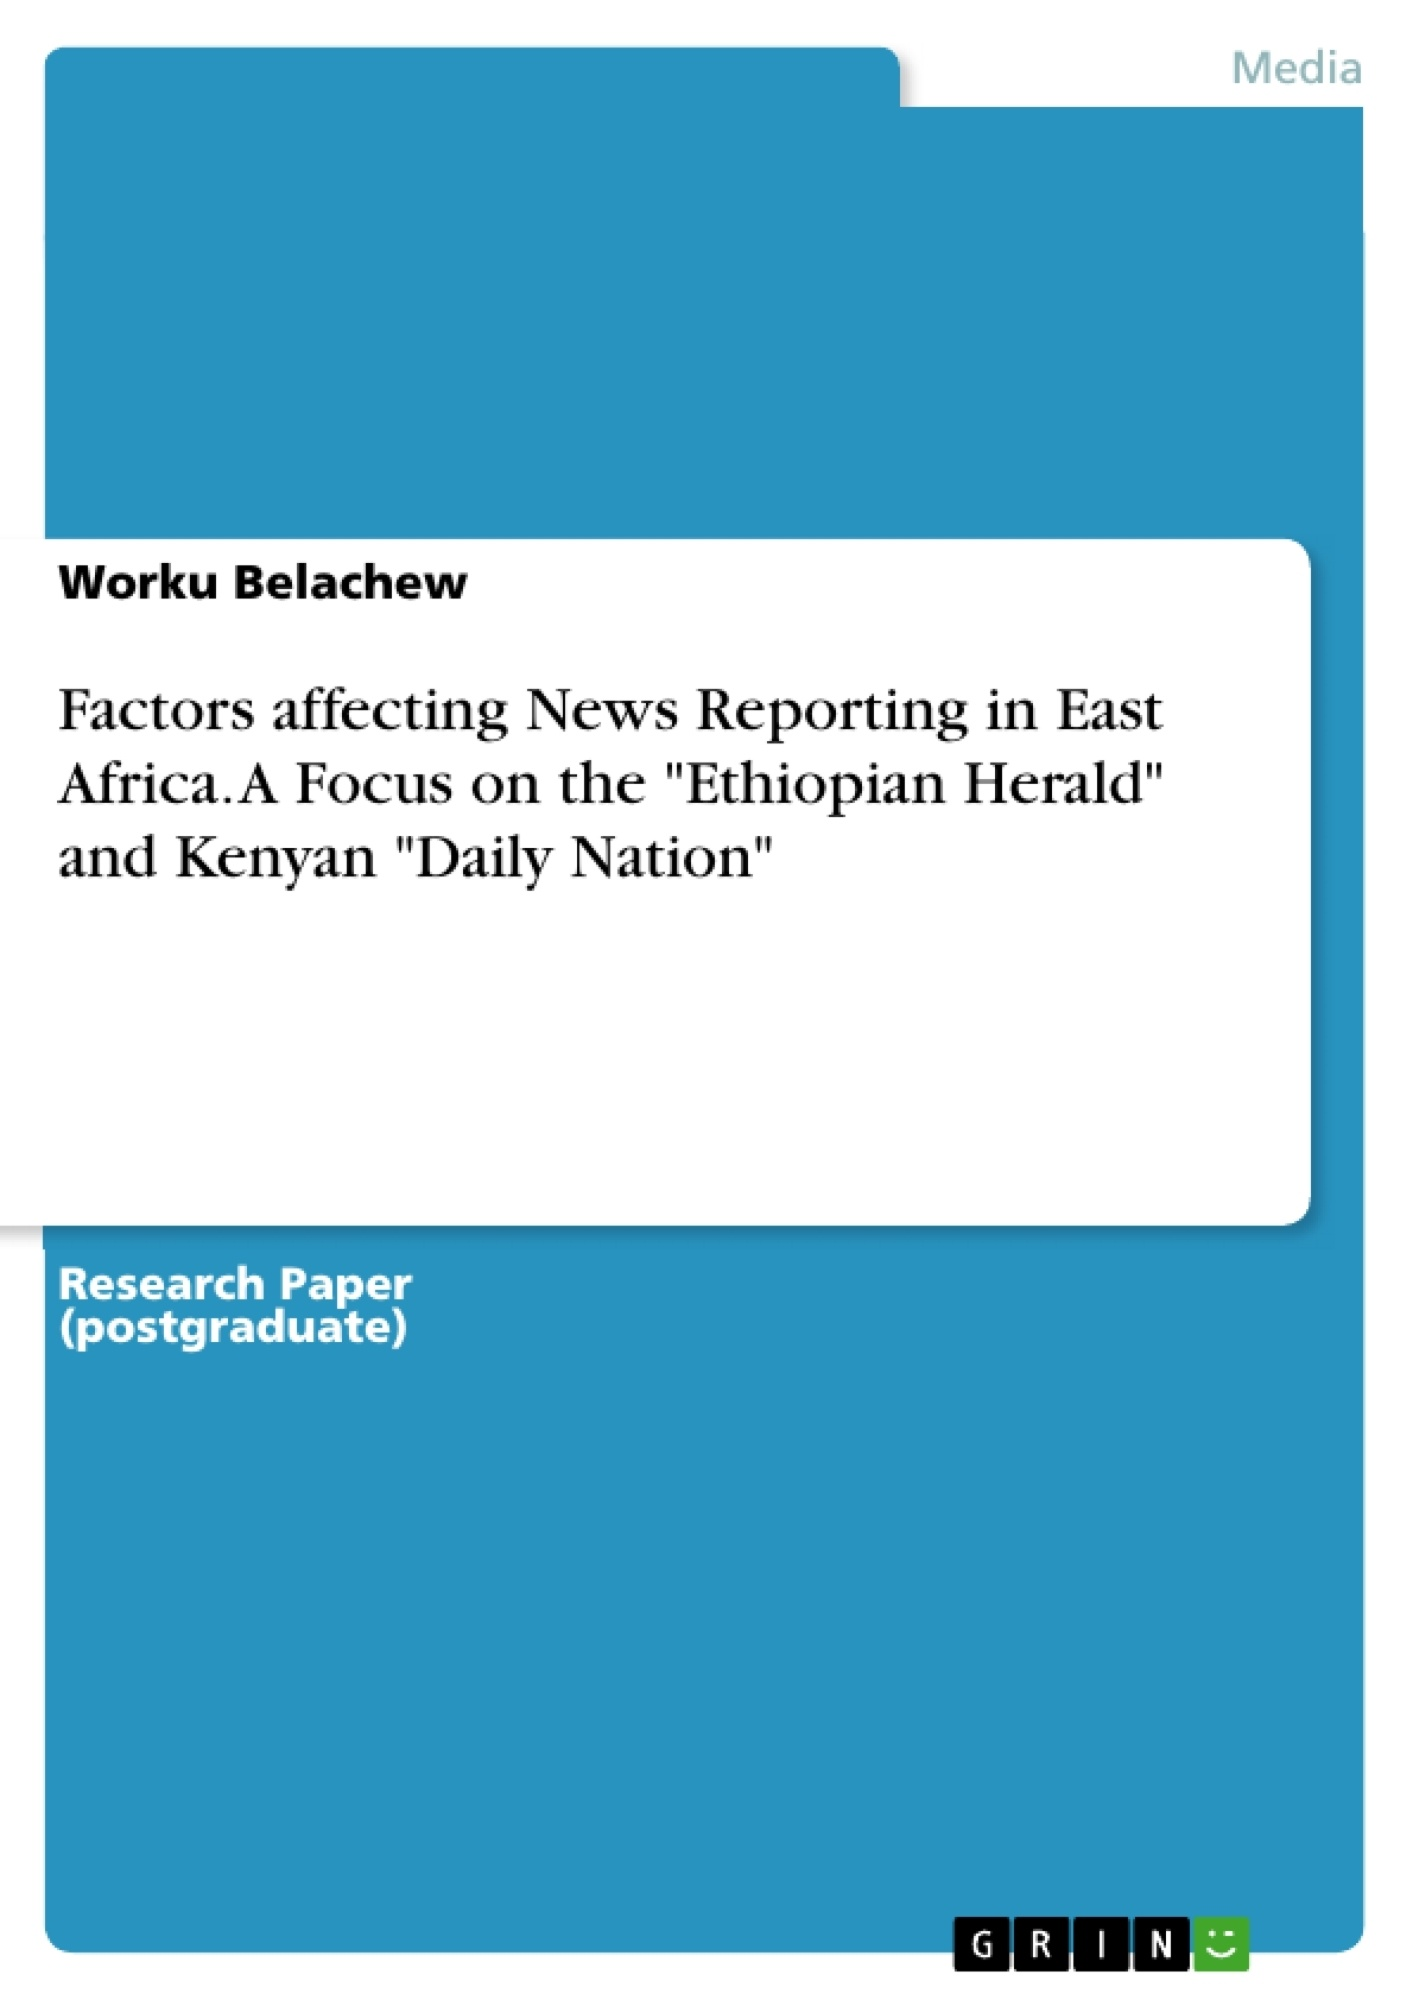 """Title: Factors affecting News Reporting in East Africa. A Focus on the """"Ethiopian Herald"""" and Kenyan """"Daily Nation"""""""